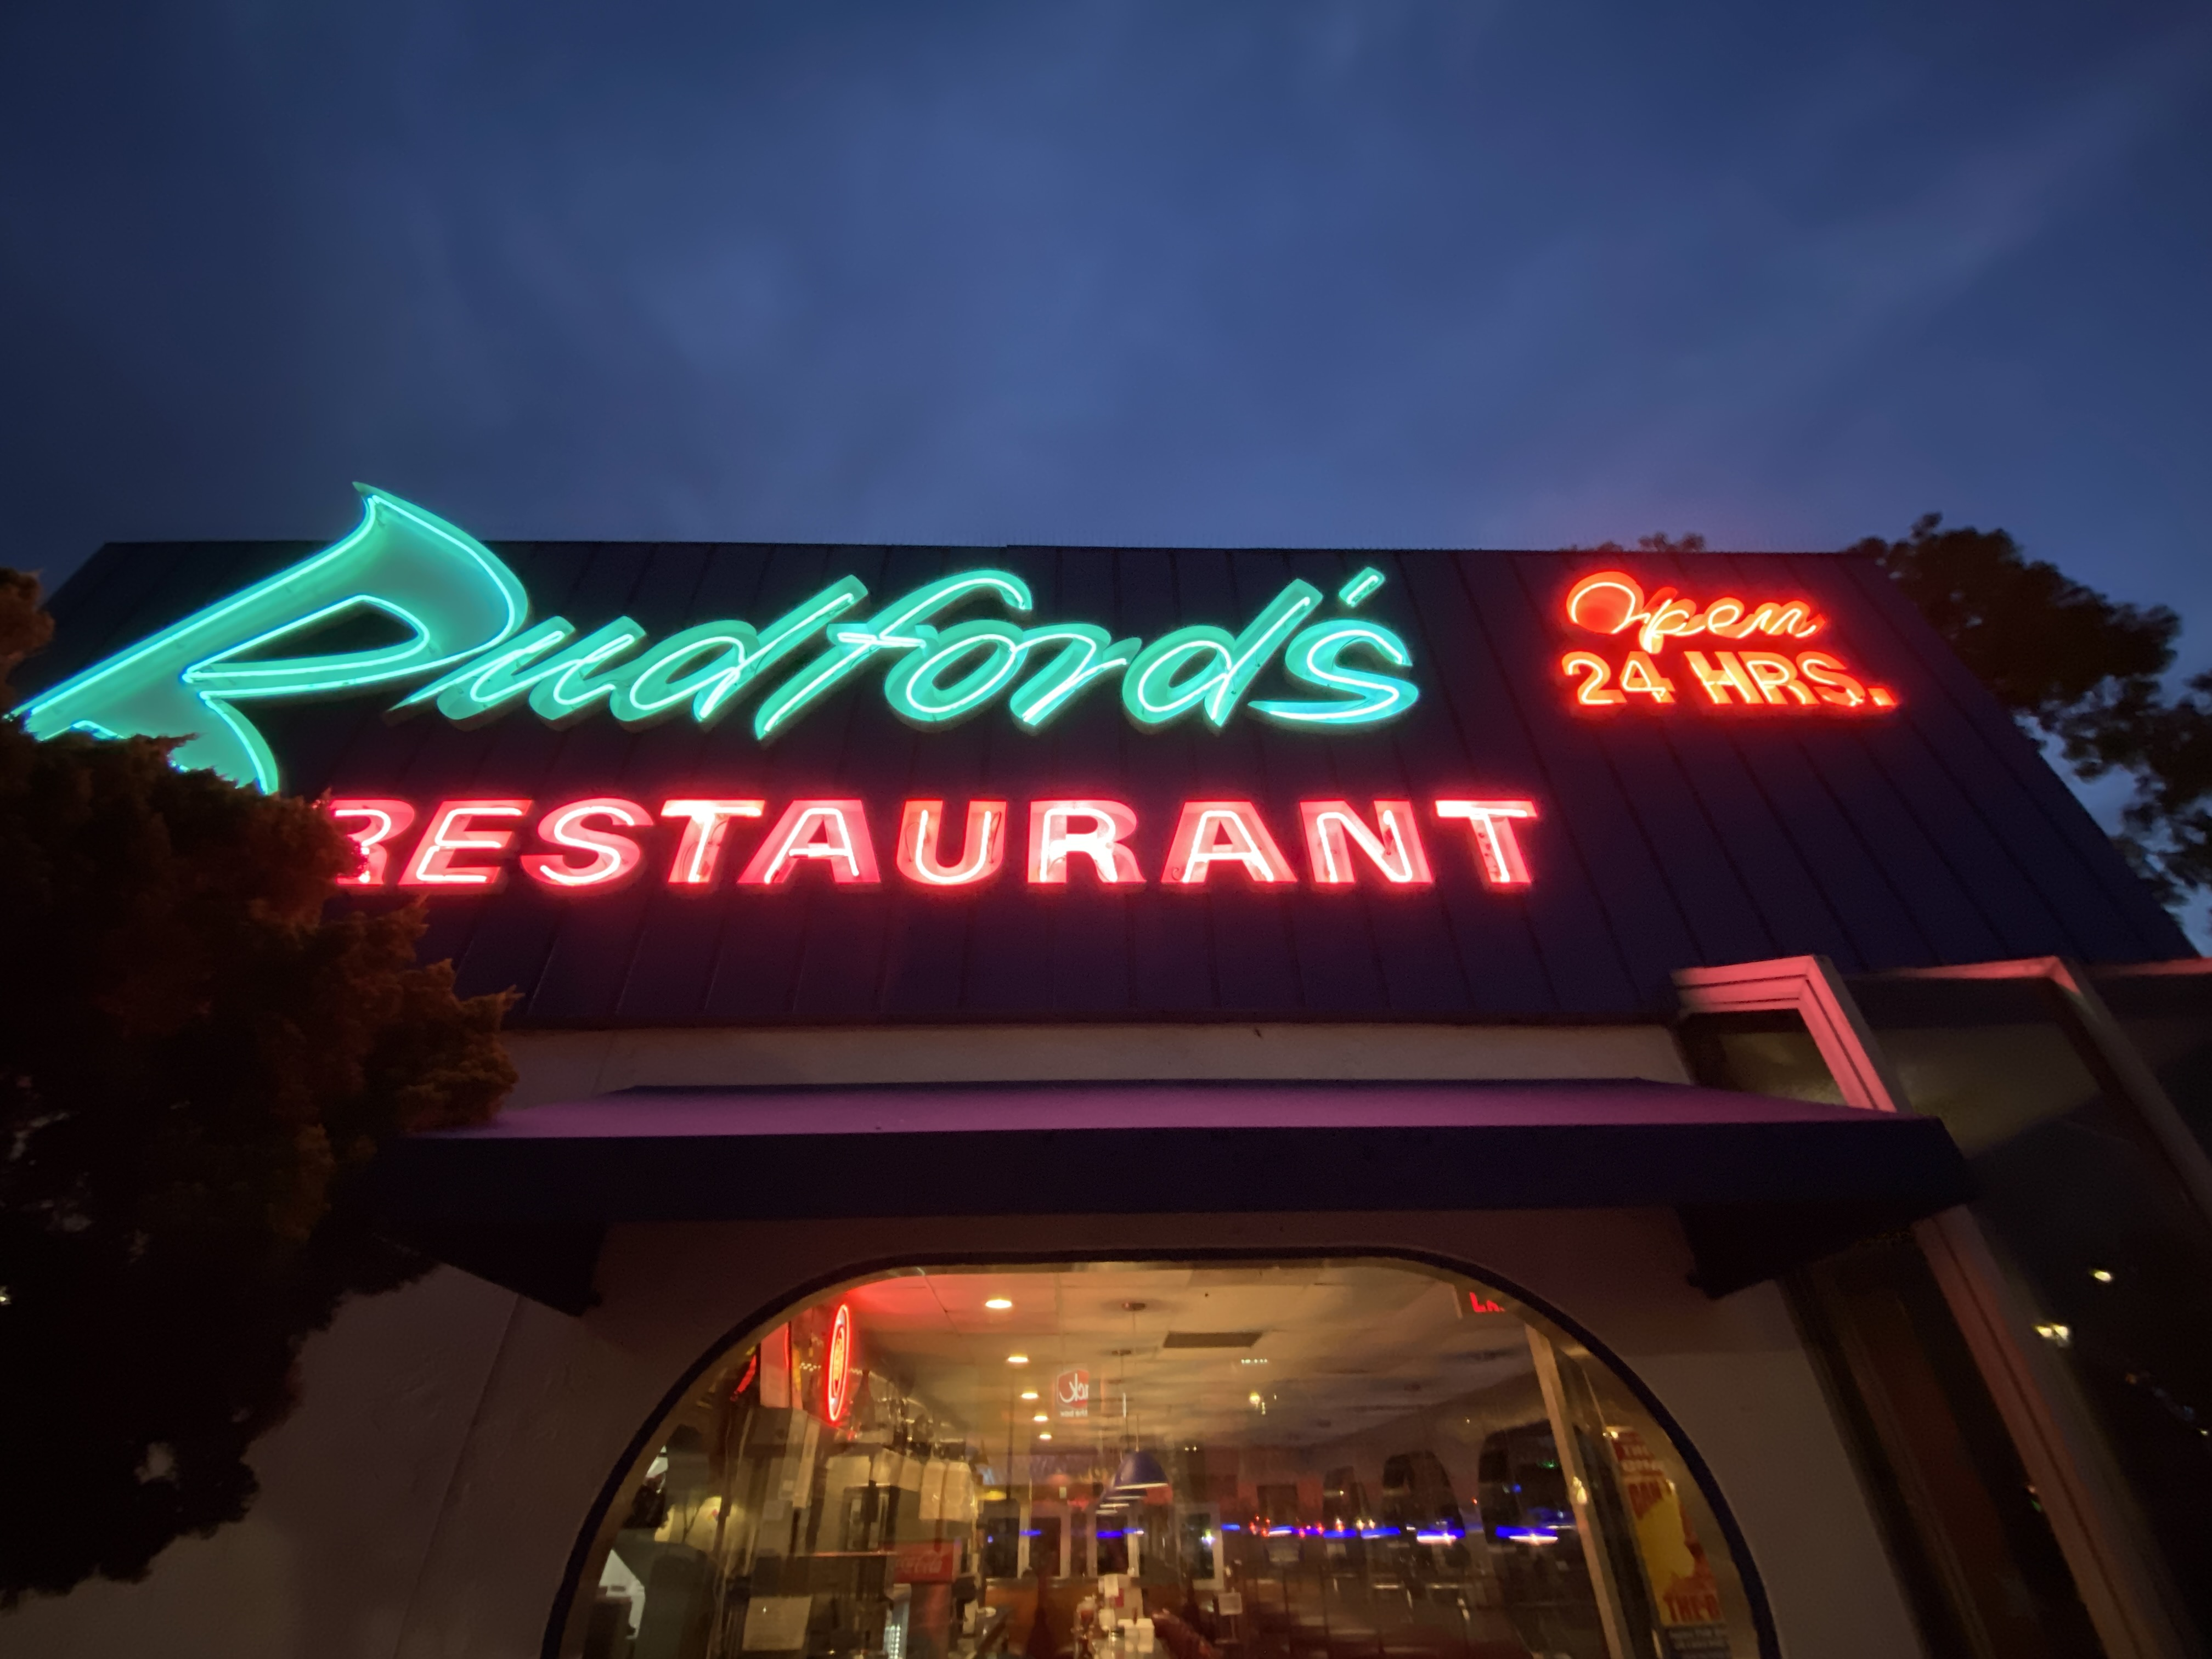 An early breakfast is hard to find in San Diego. Prior to the pandemic is was super easy. Rudford's was the preferred choice for us!